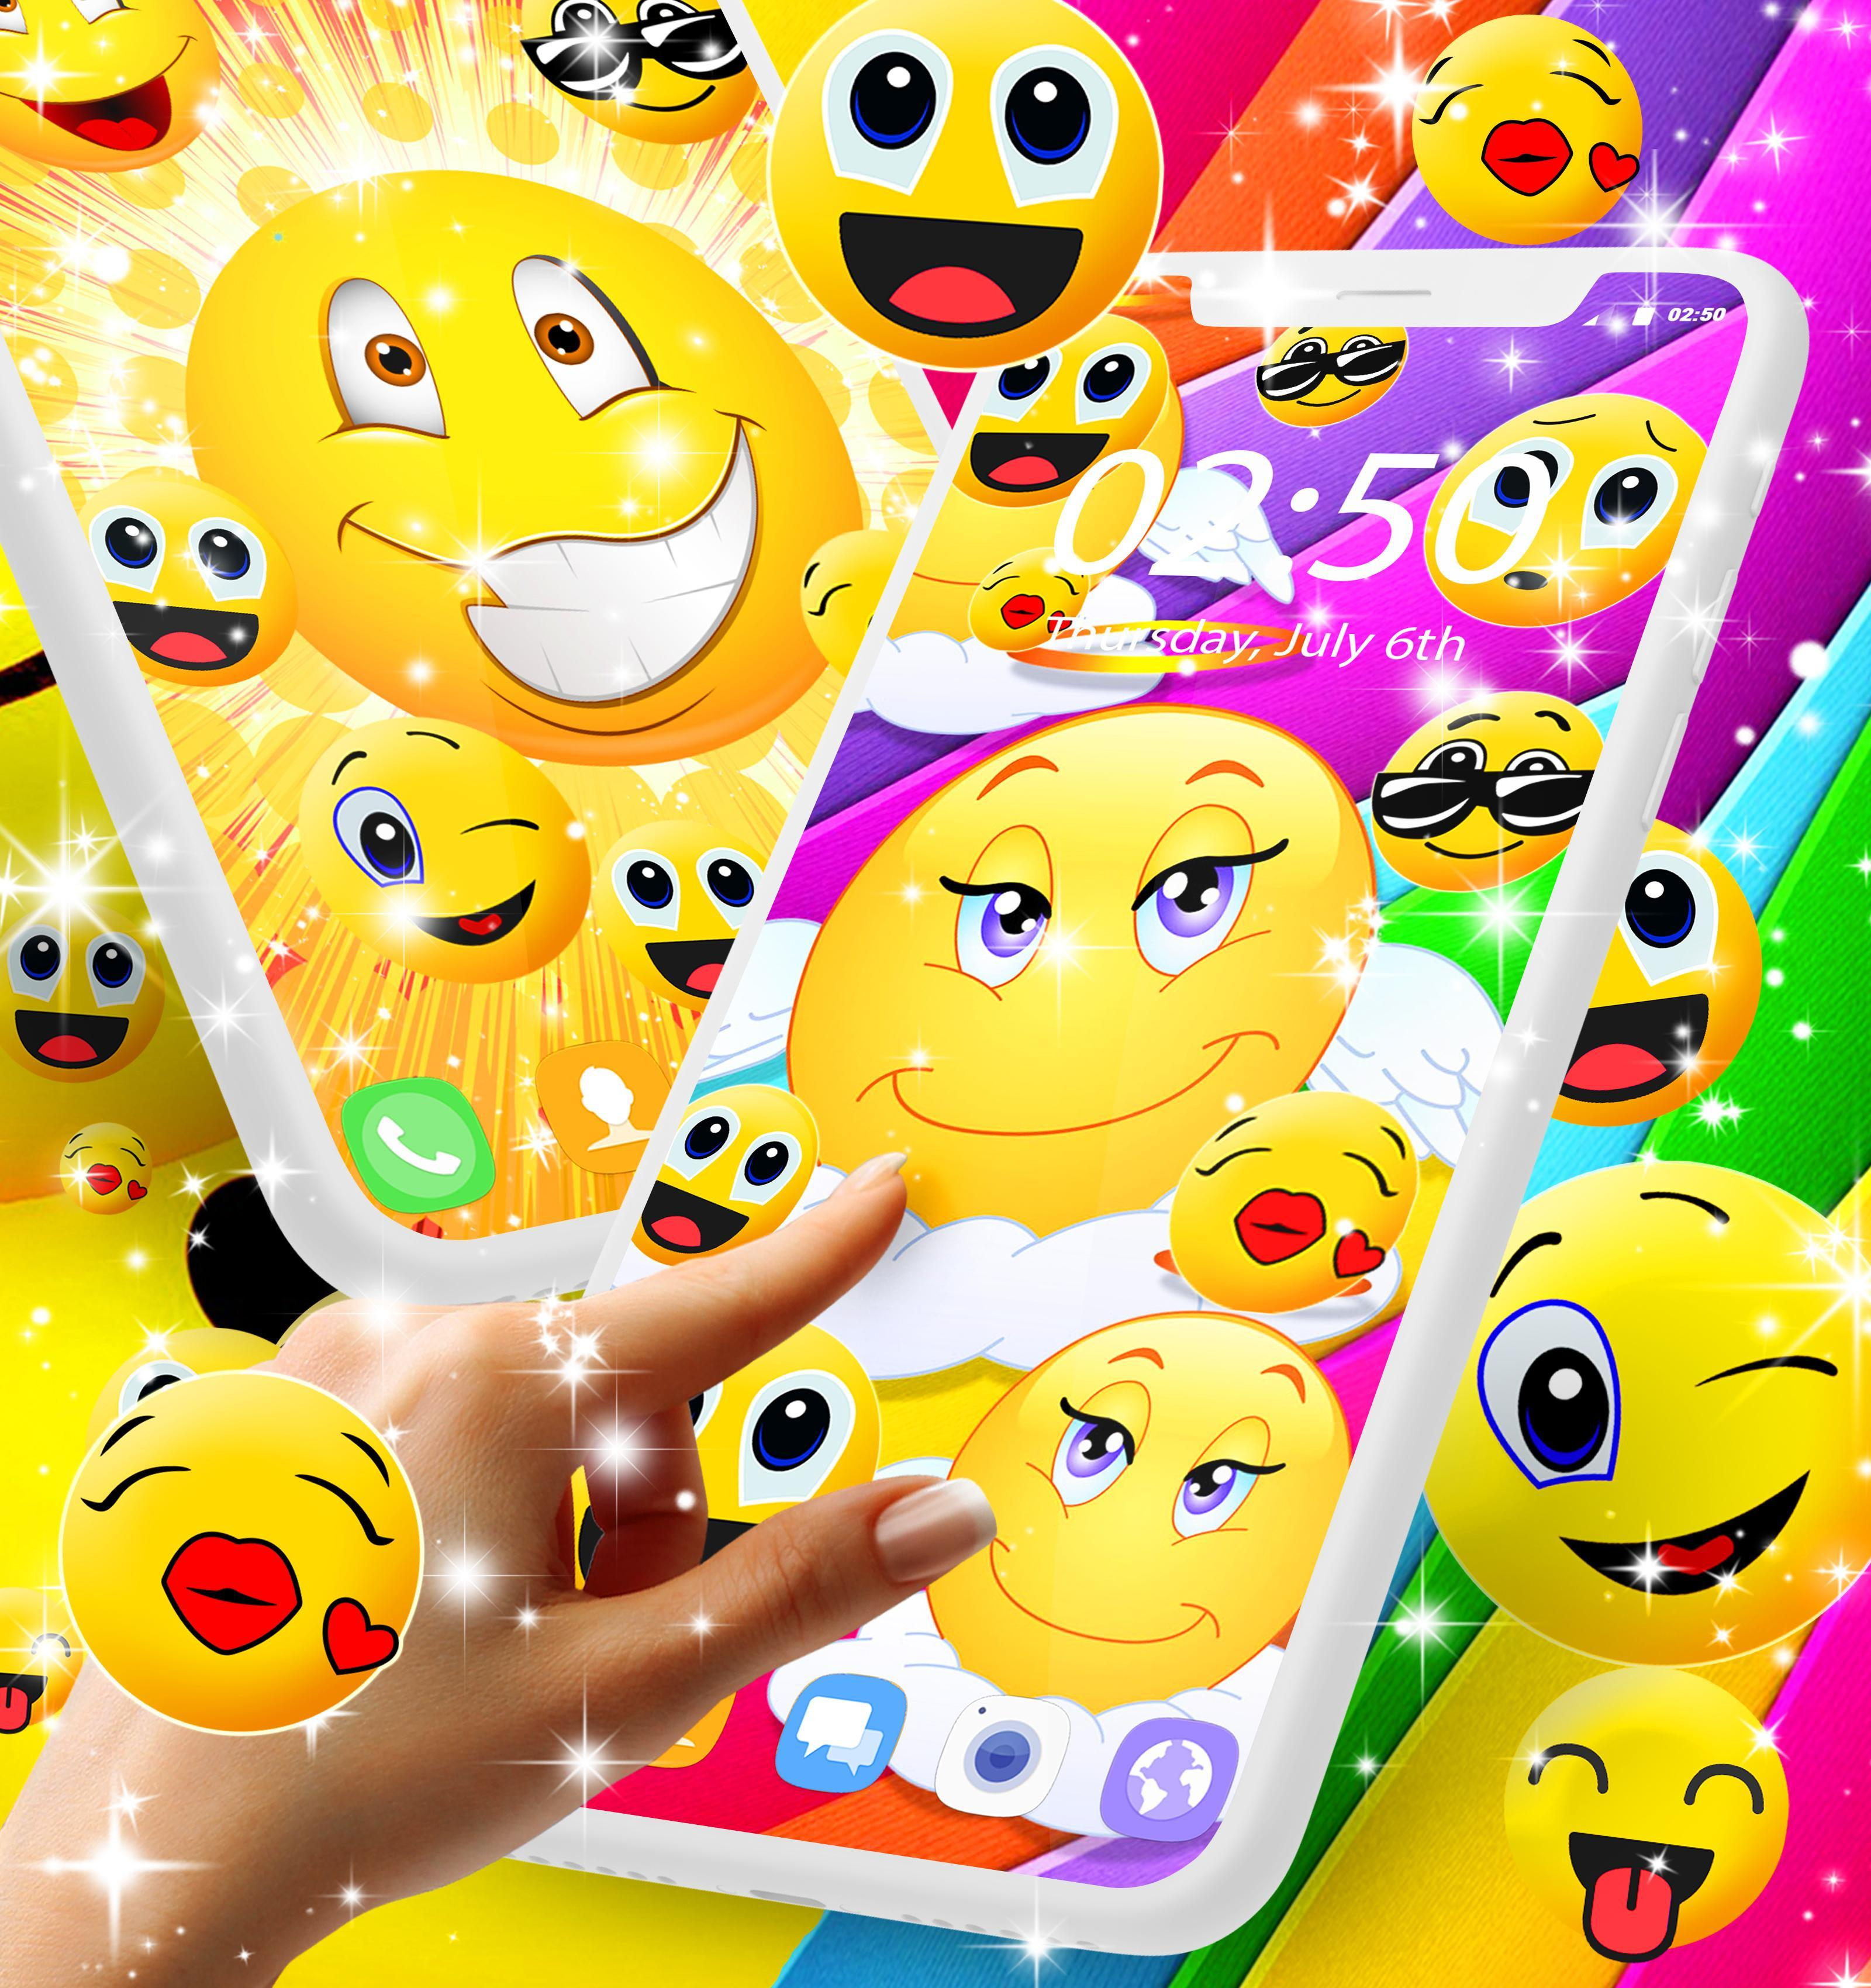 Emoji Live Wallpaper For Android